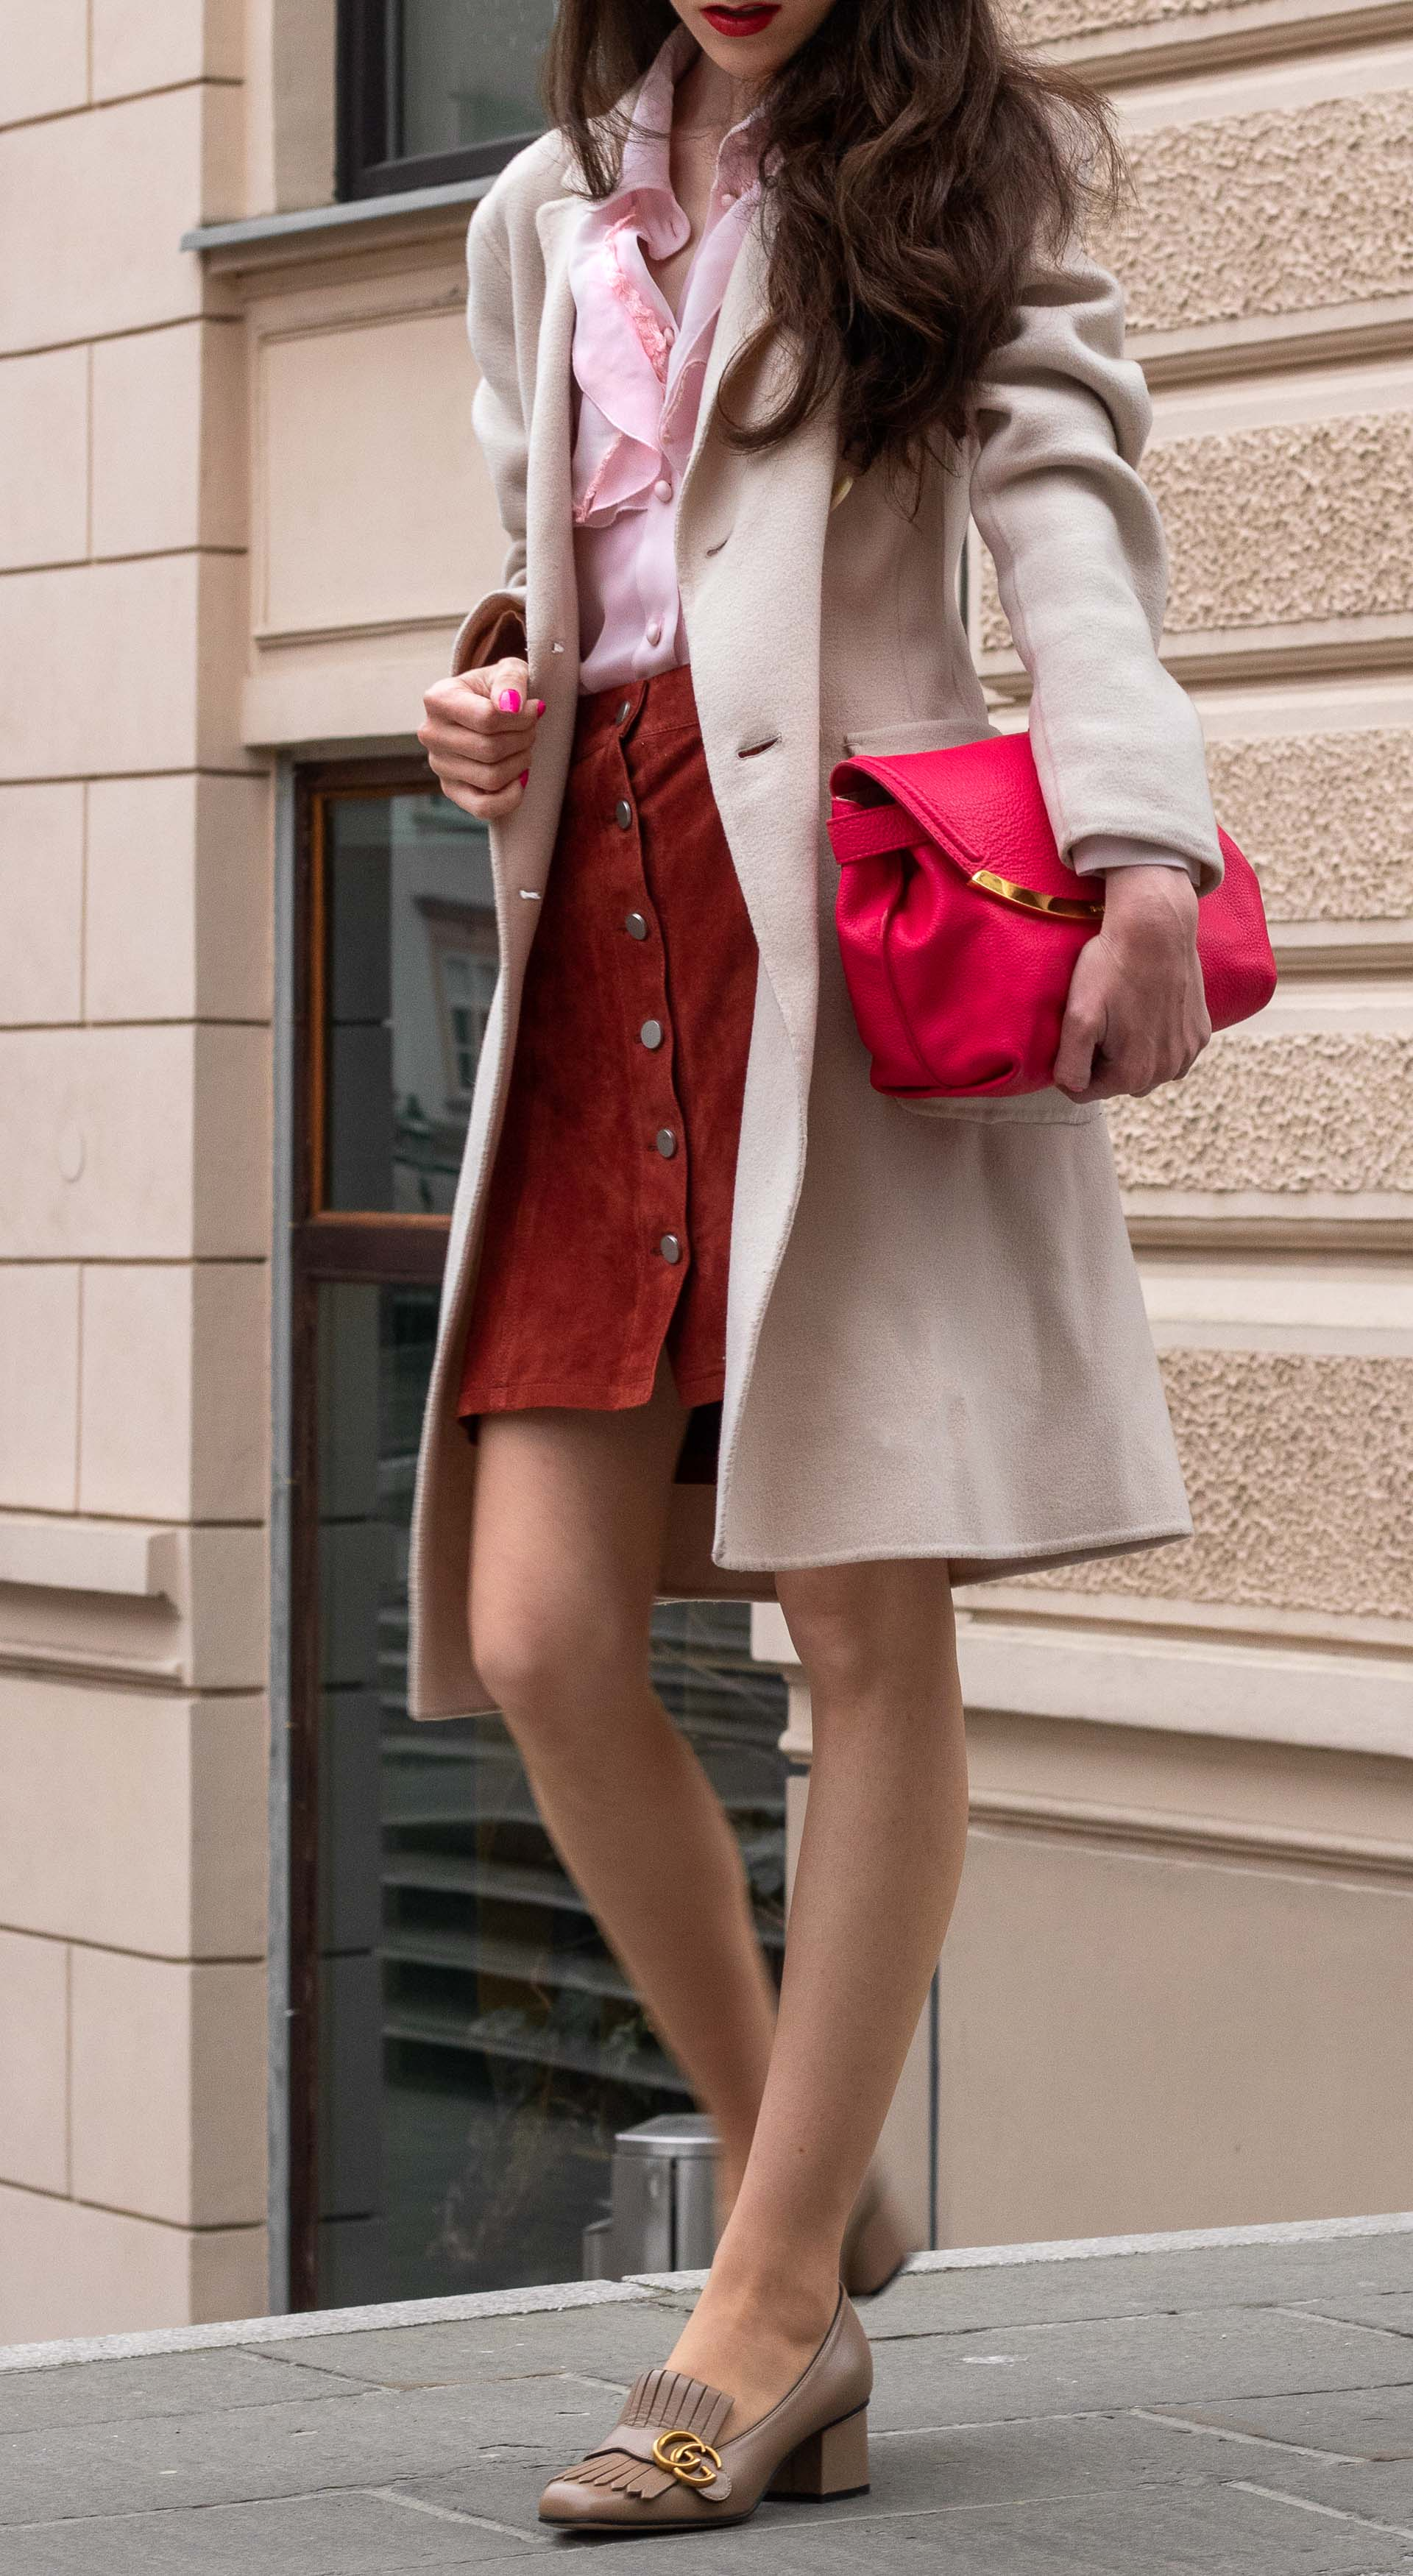 Fashion blogger Veronika Lipar of Brunette from Wall Street dressed in easy transitional outfit Weekend Max Mara double breasted coat Red Valentino pink blouse brown suede front button short skirt pink pouch bag Gucci heeled loafers on the street